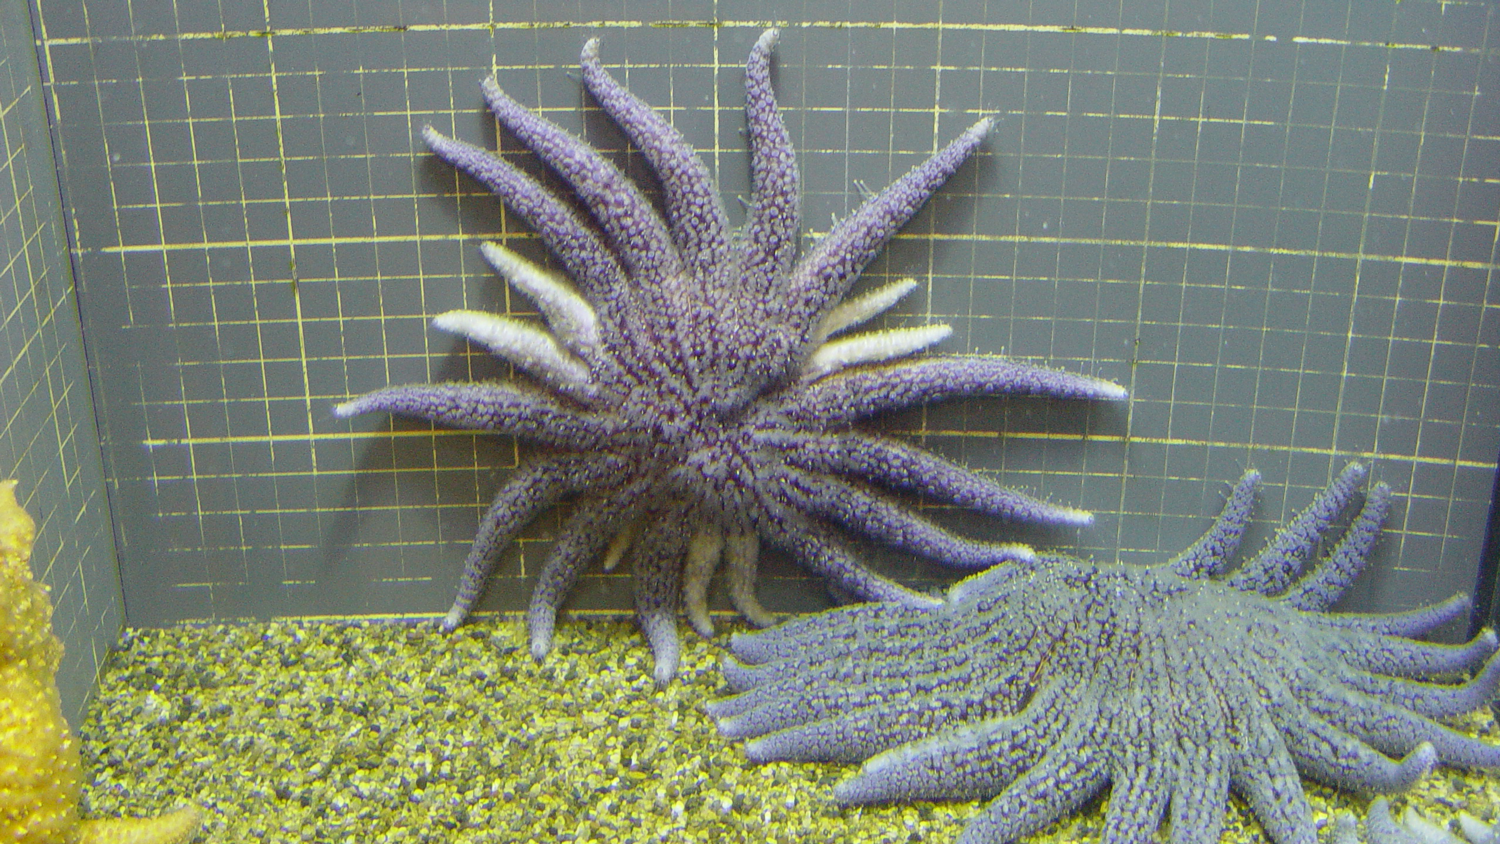 Photograph of a sea star regenerating at least seven arms